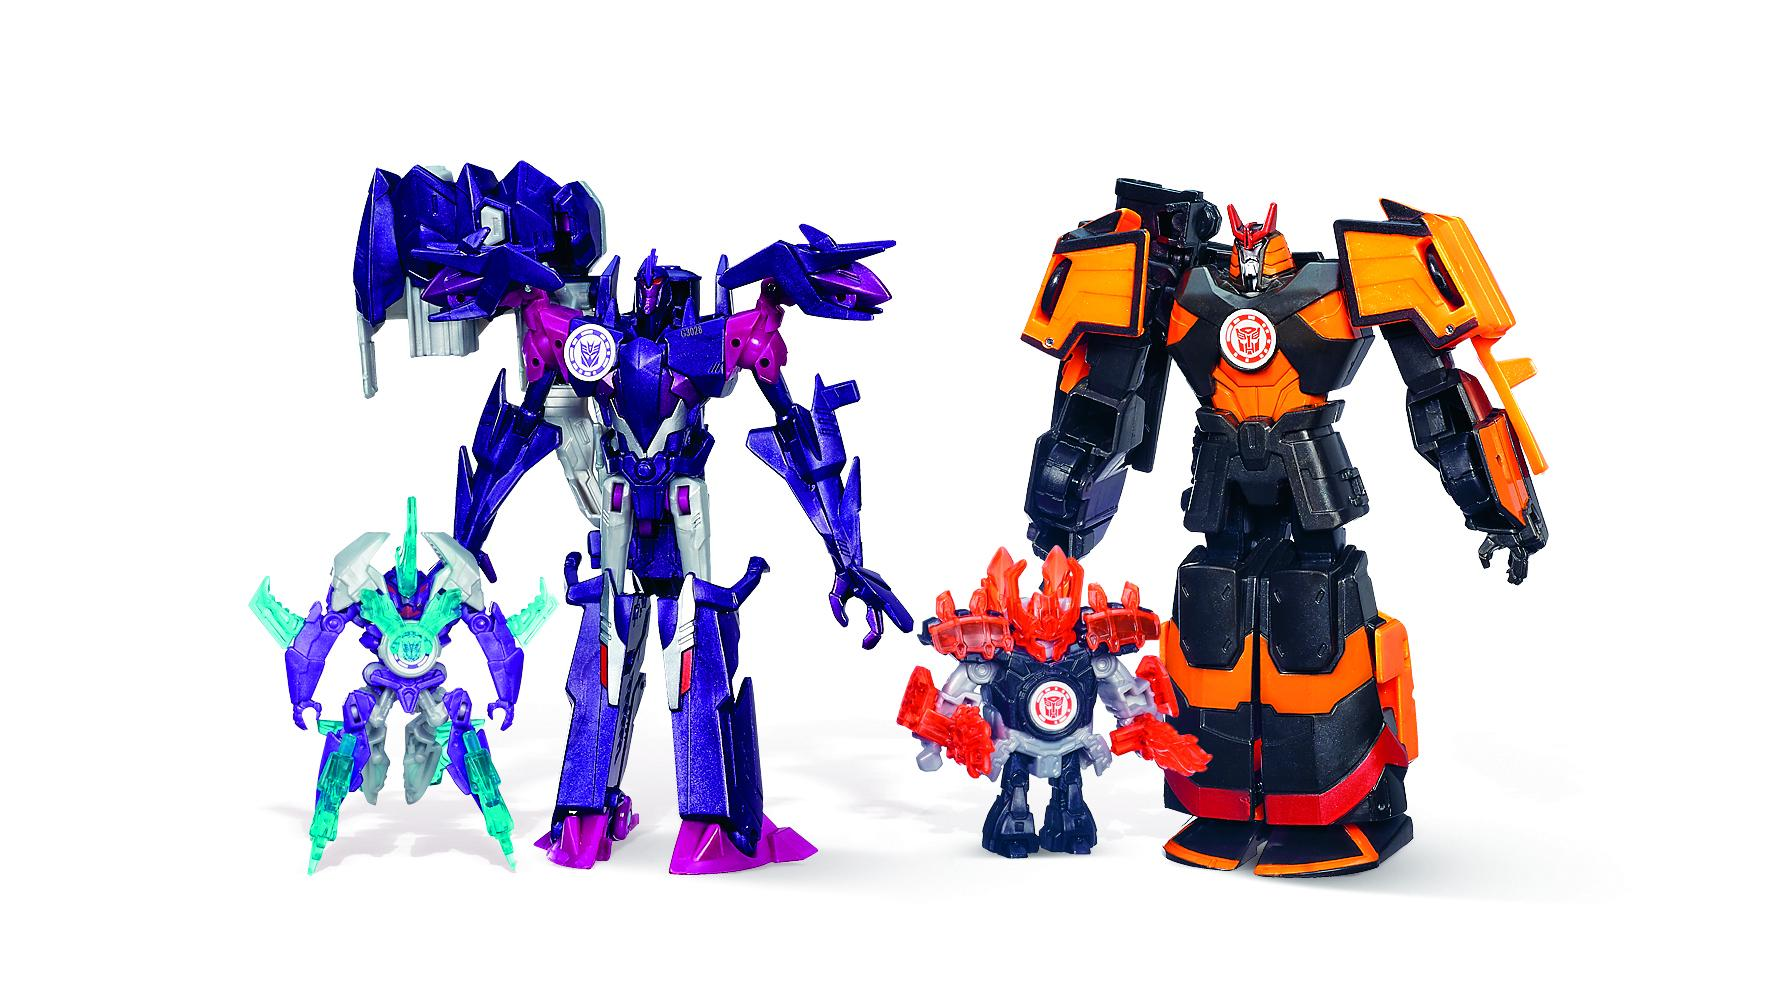 TRANSFORMERS DEPLOYERS 20CM, CU